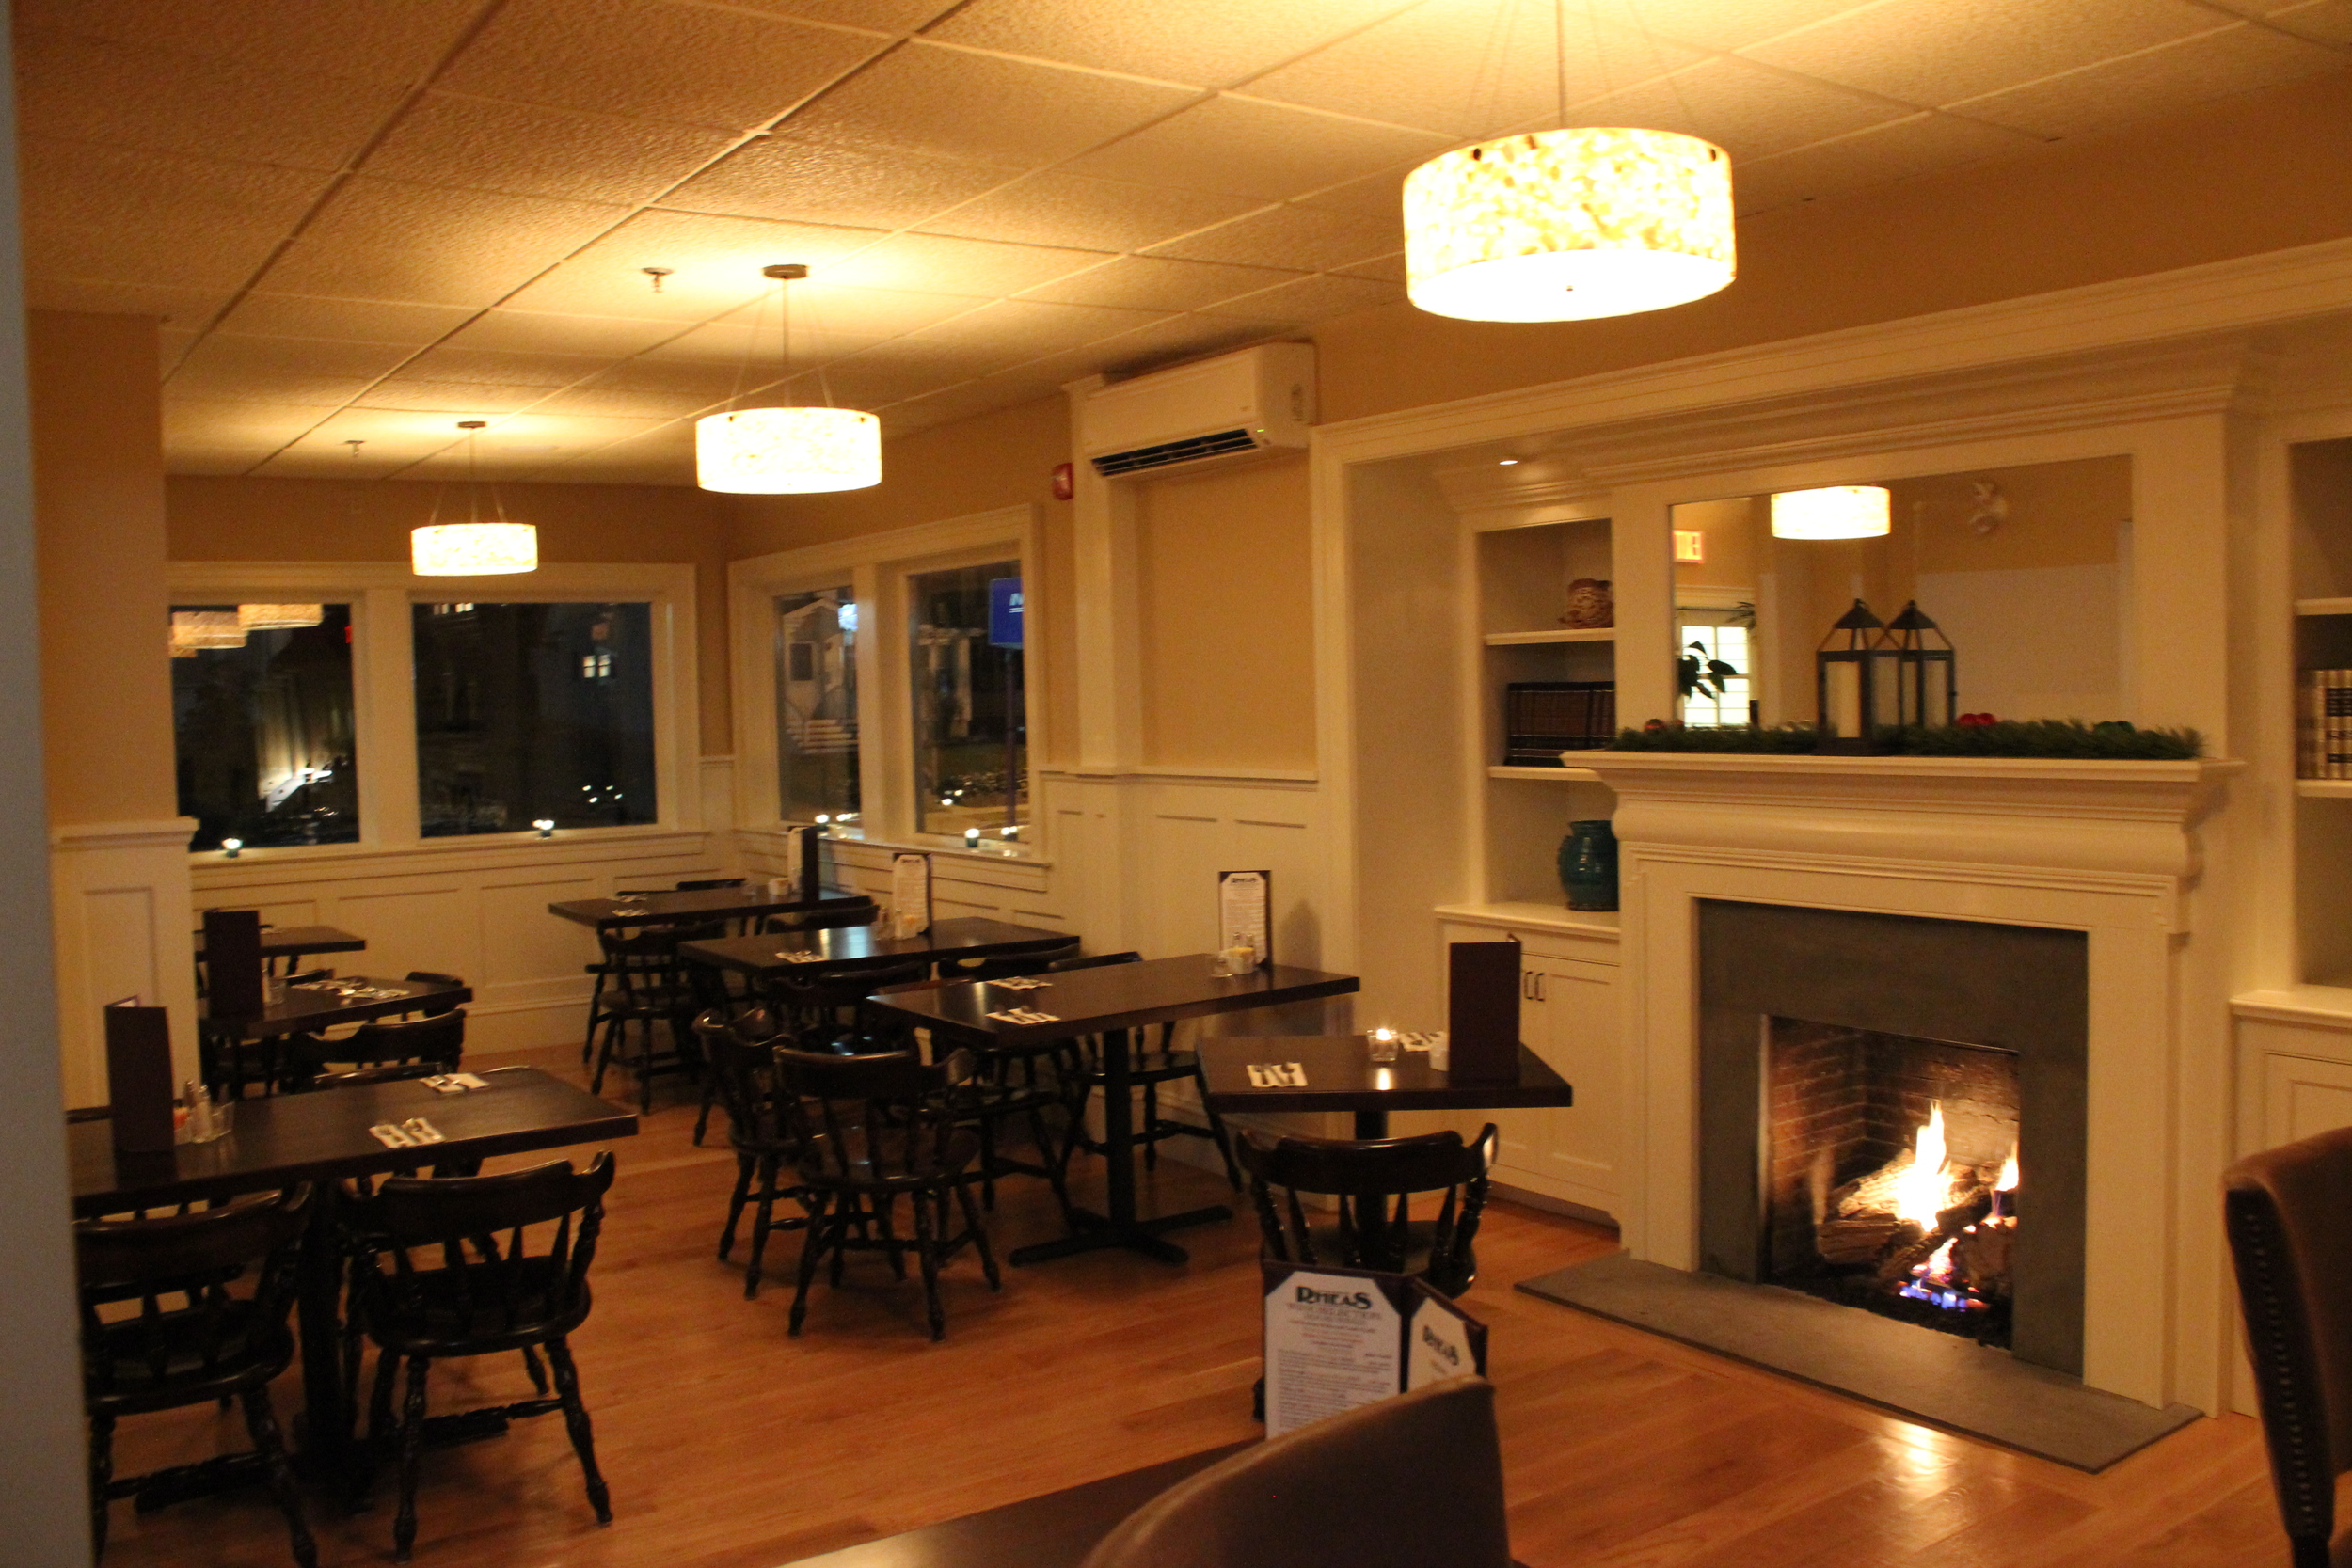 Our dining room is recently renovated and includes two working fireplaces.